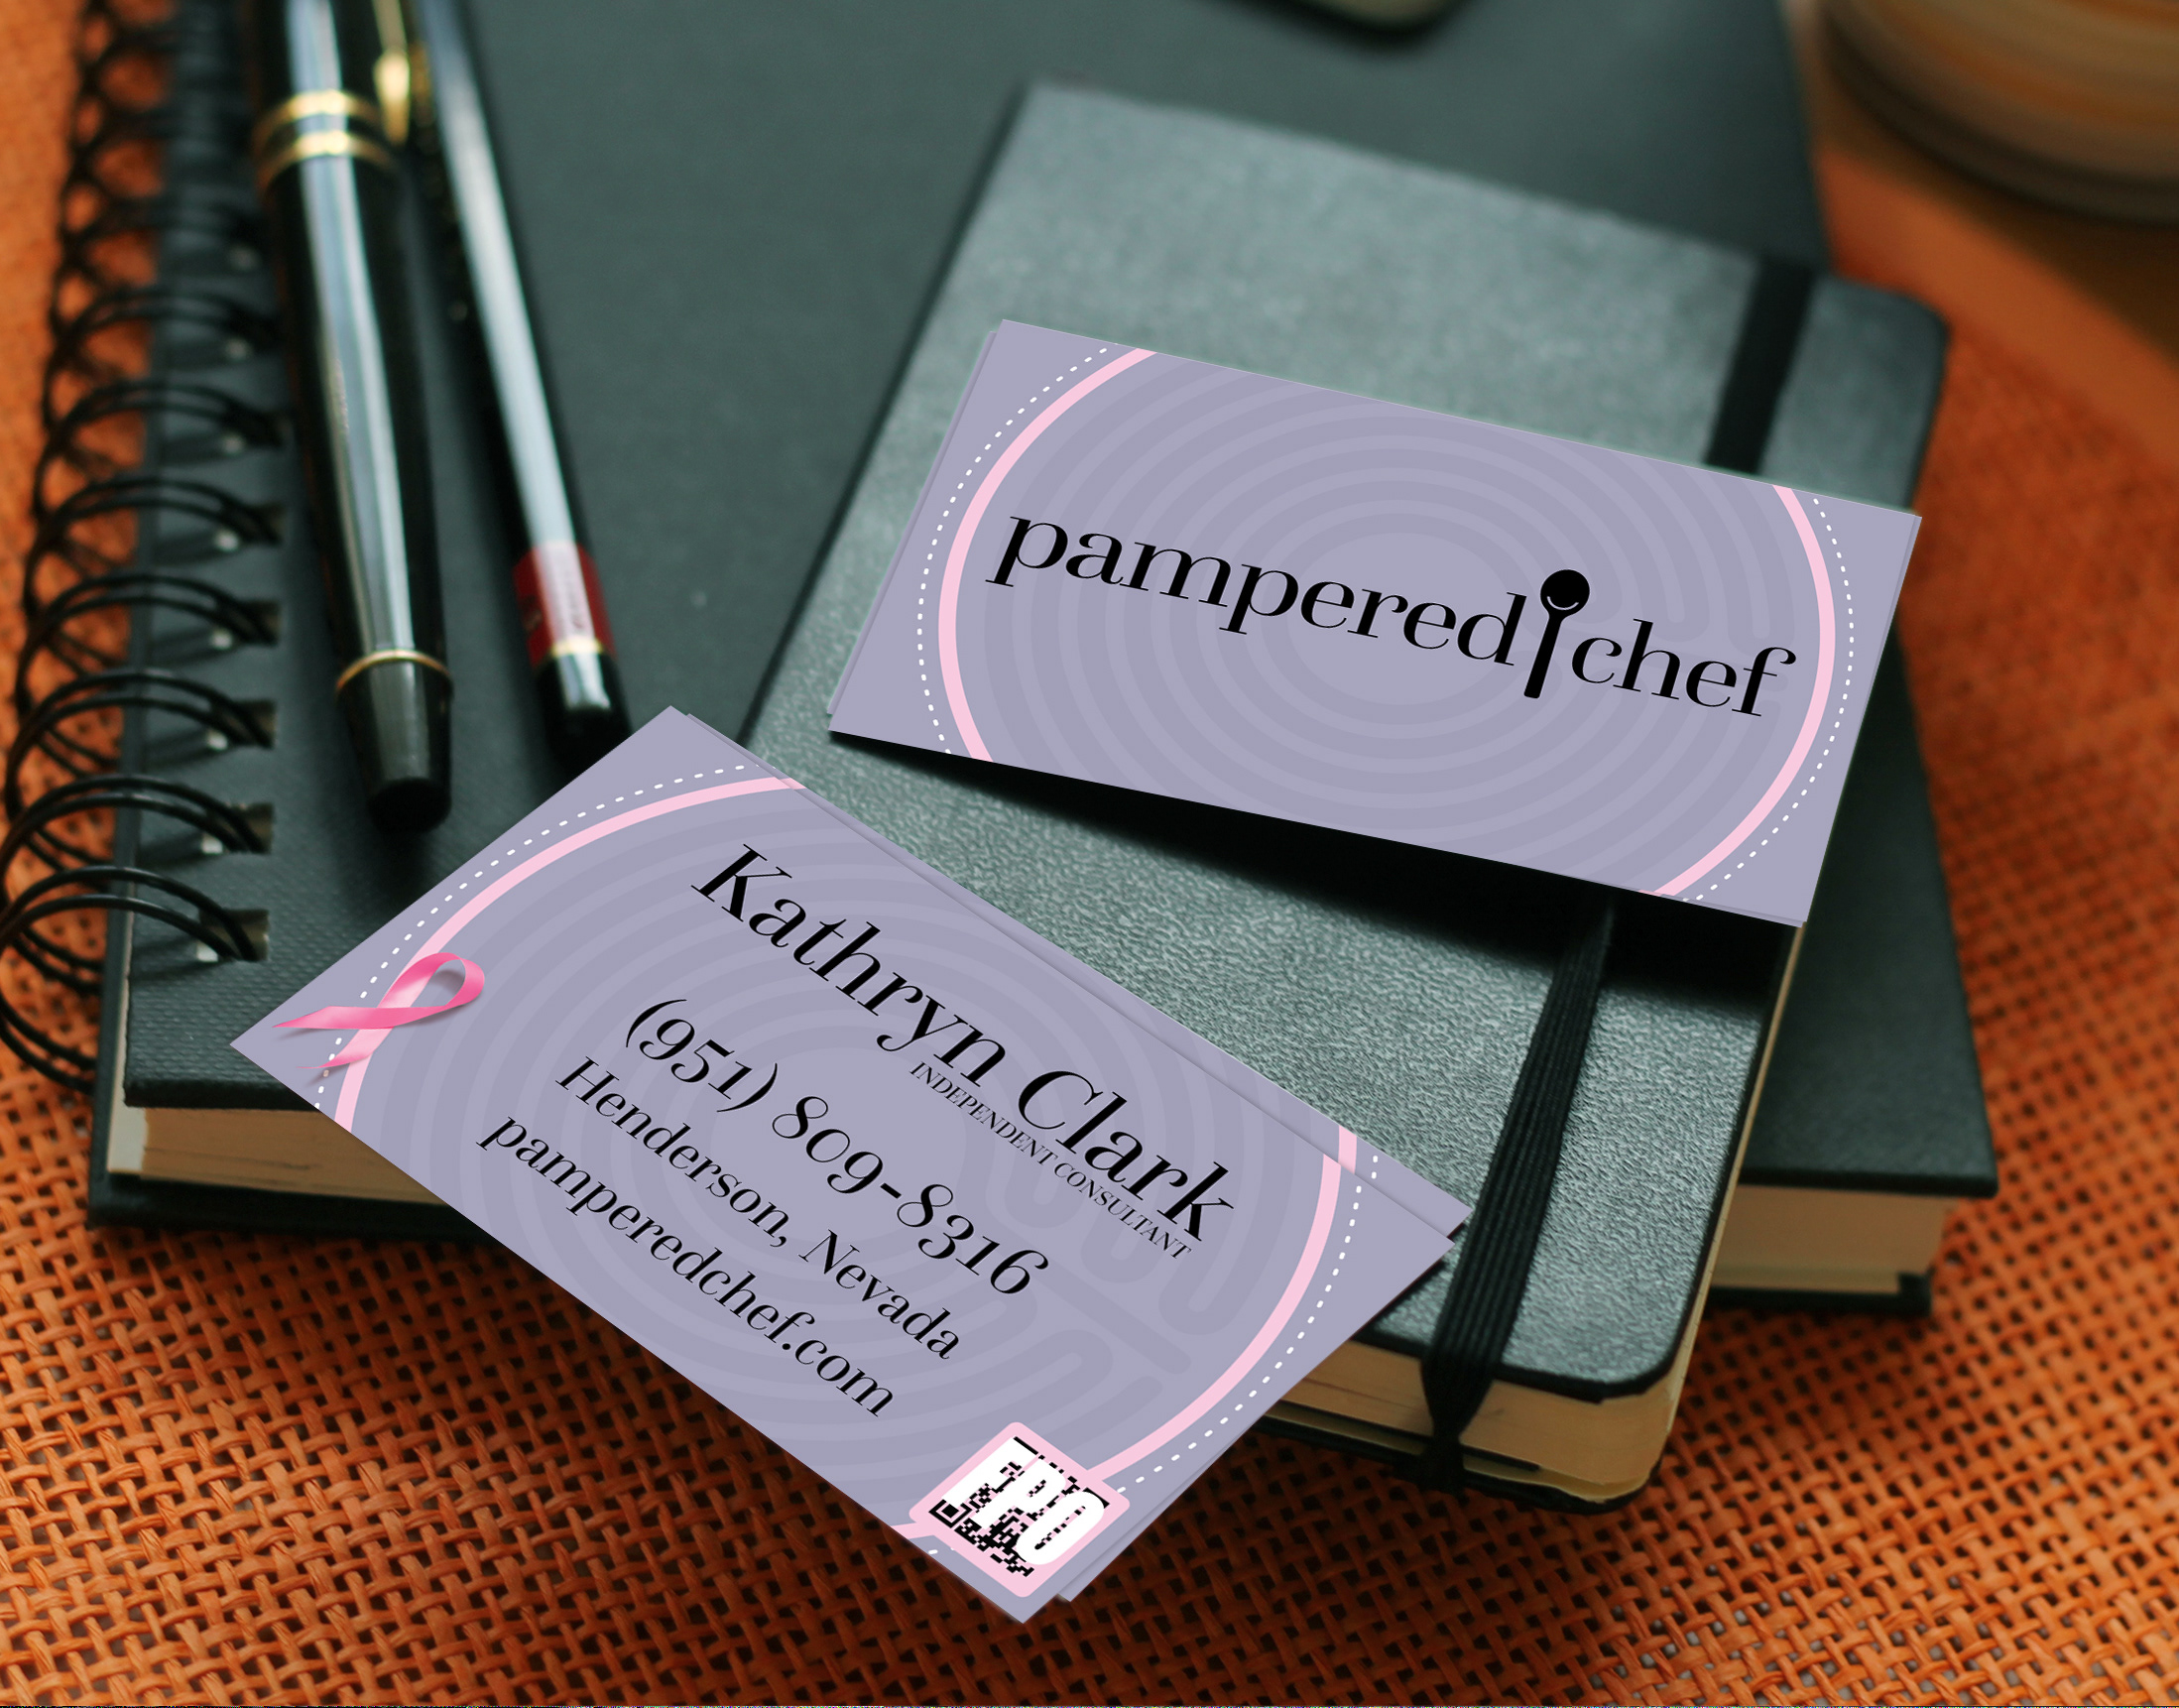 Rob samples projects pampered chef business cards colourmoves Images